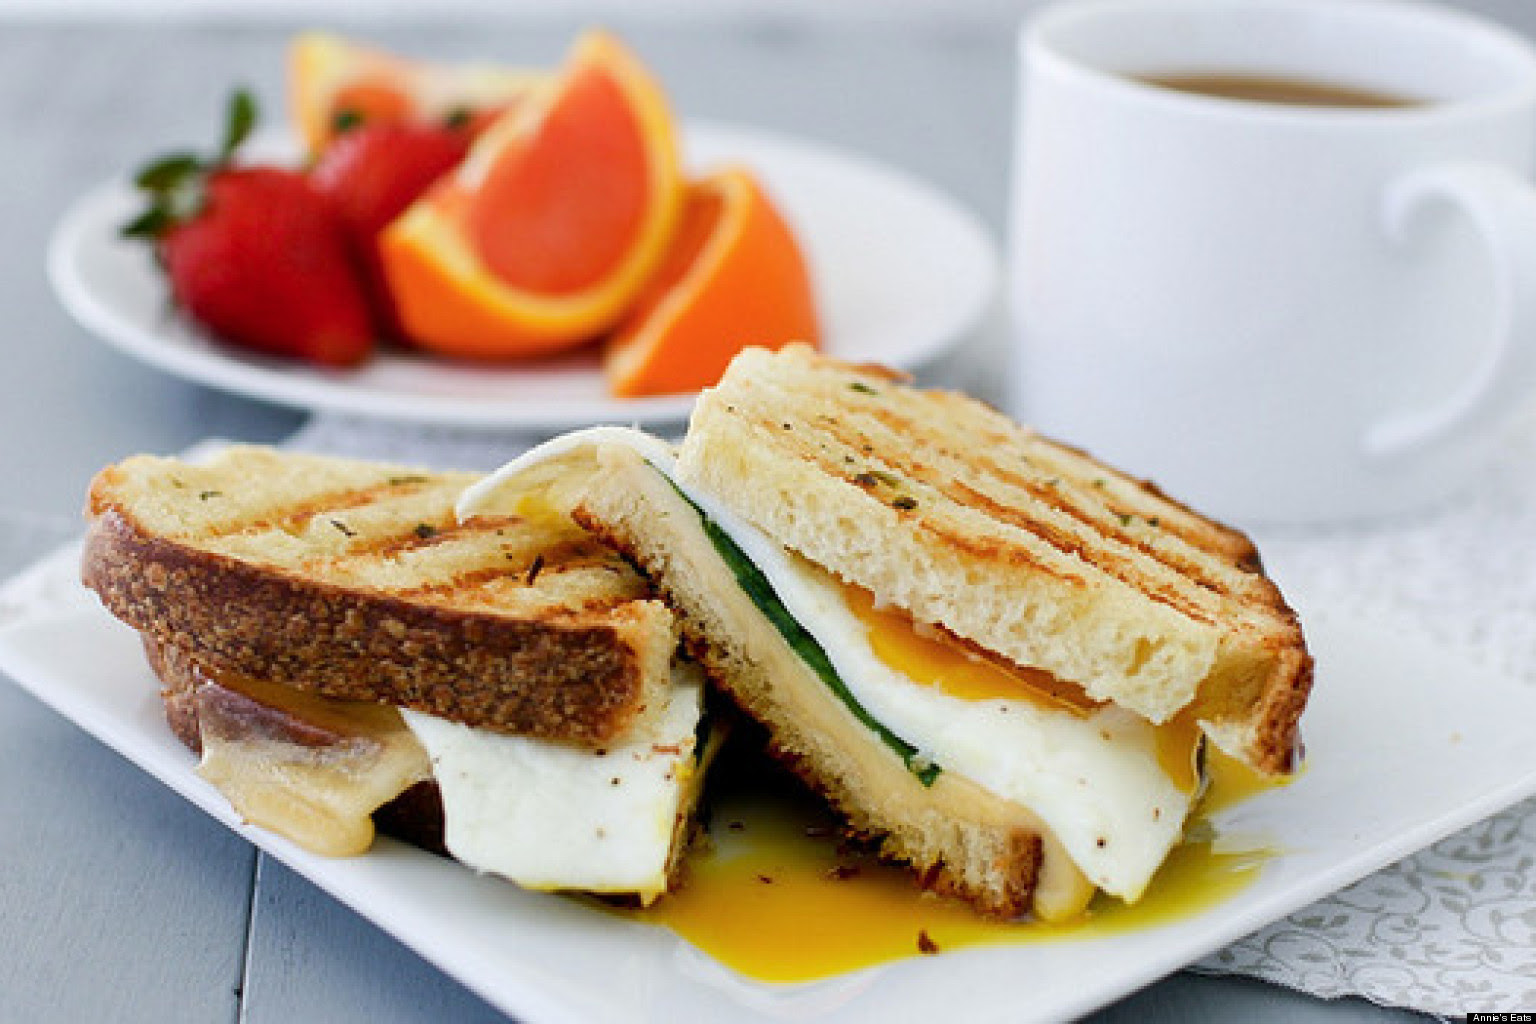 Breakfast Recipes Made In Just 15 Minutes (PHOTOS) | HuffPost